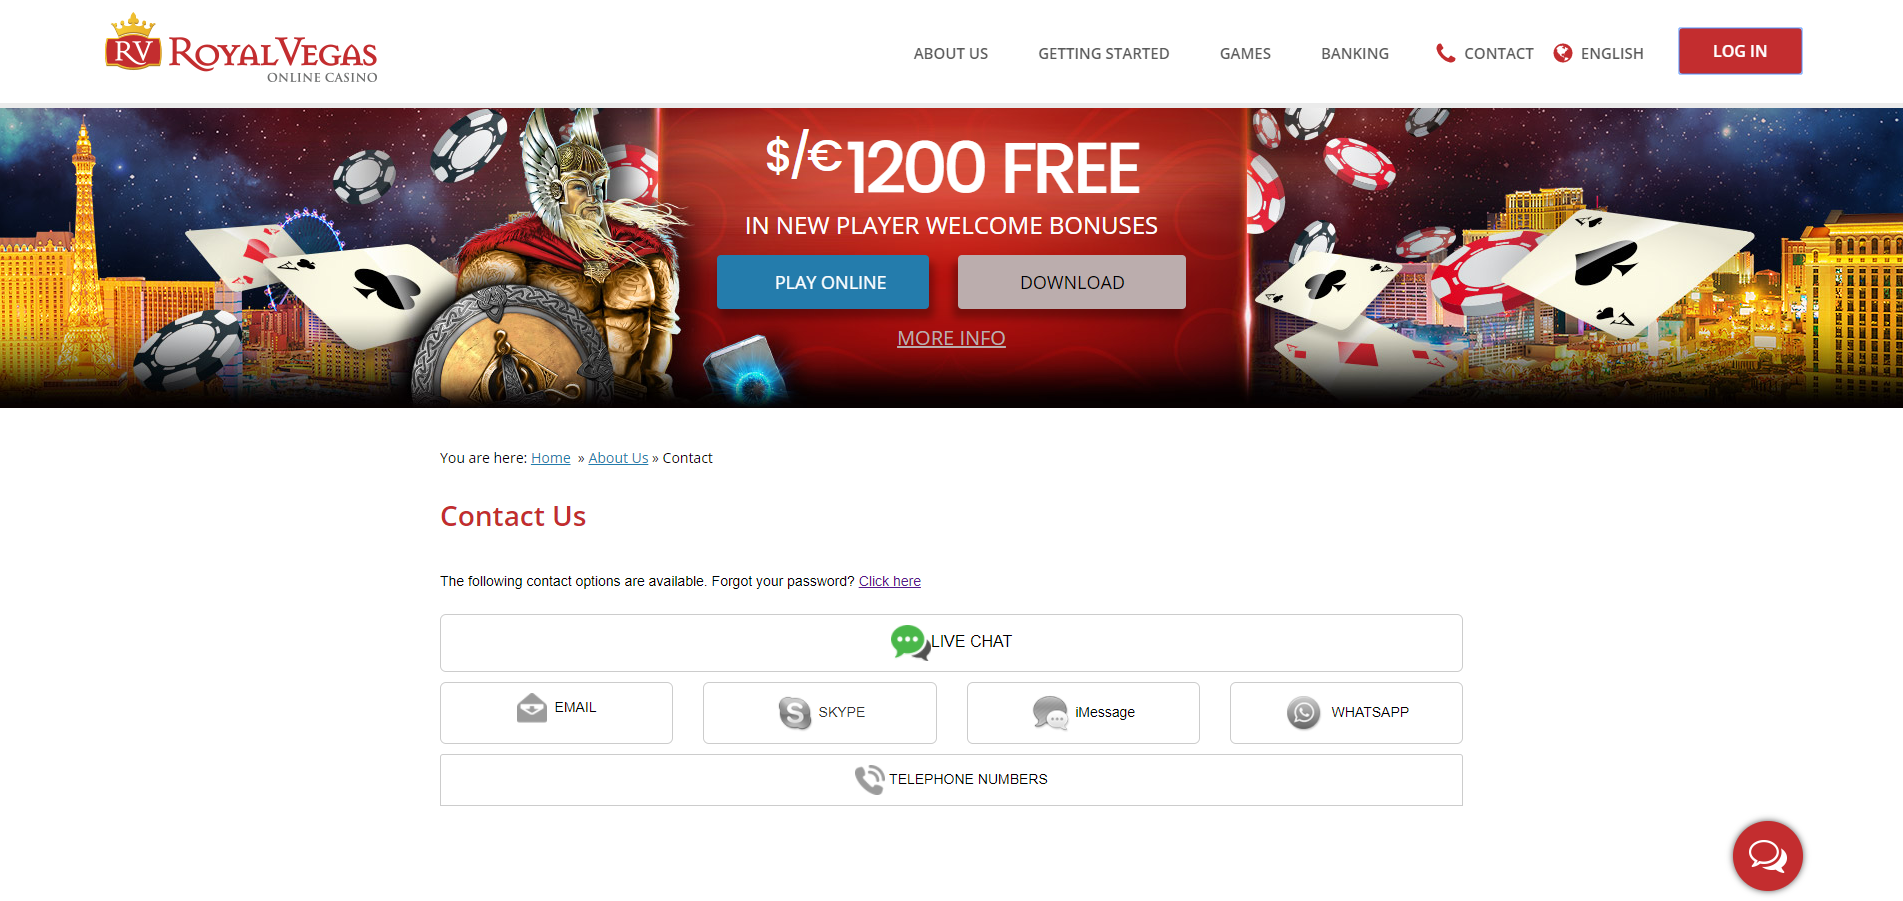 BetAt Casino Online Review With Promotions & Bonuses